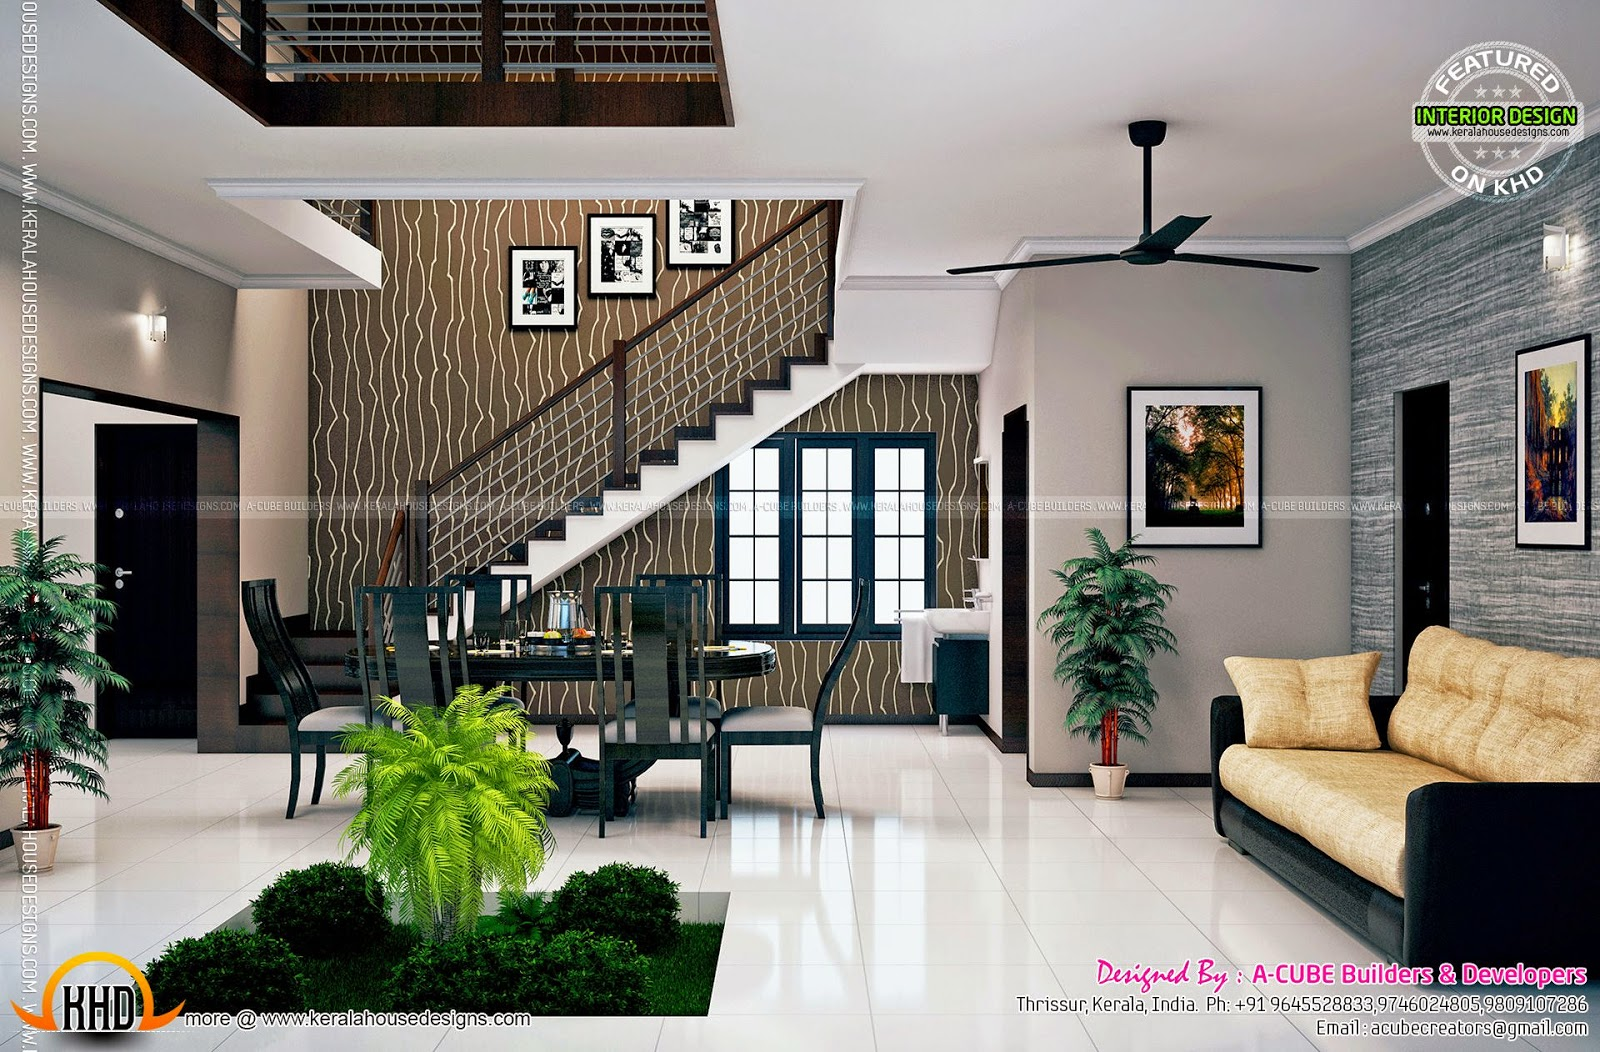 Kerala interior design ideas kerala home design and for Kerala home living room designs